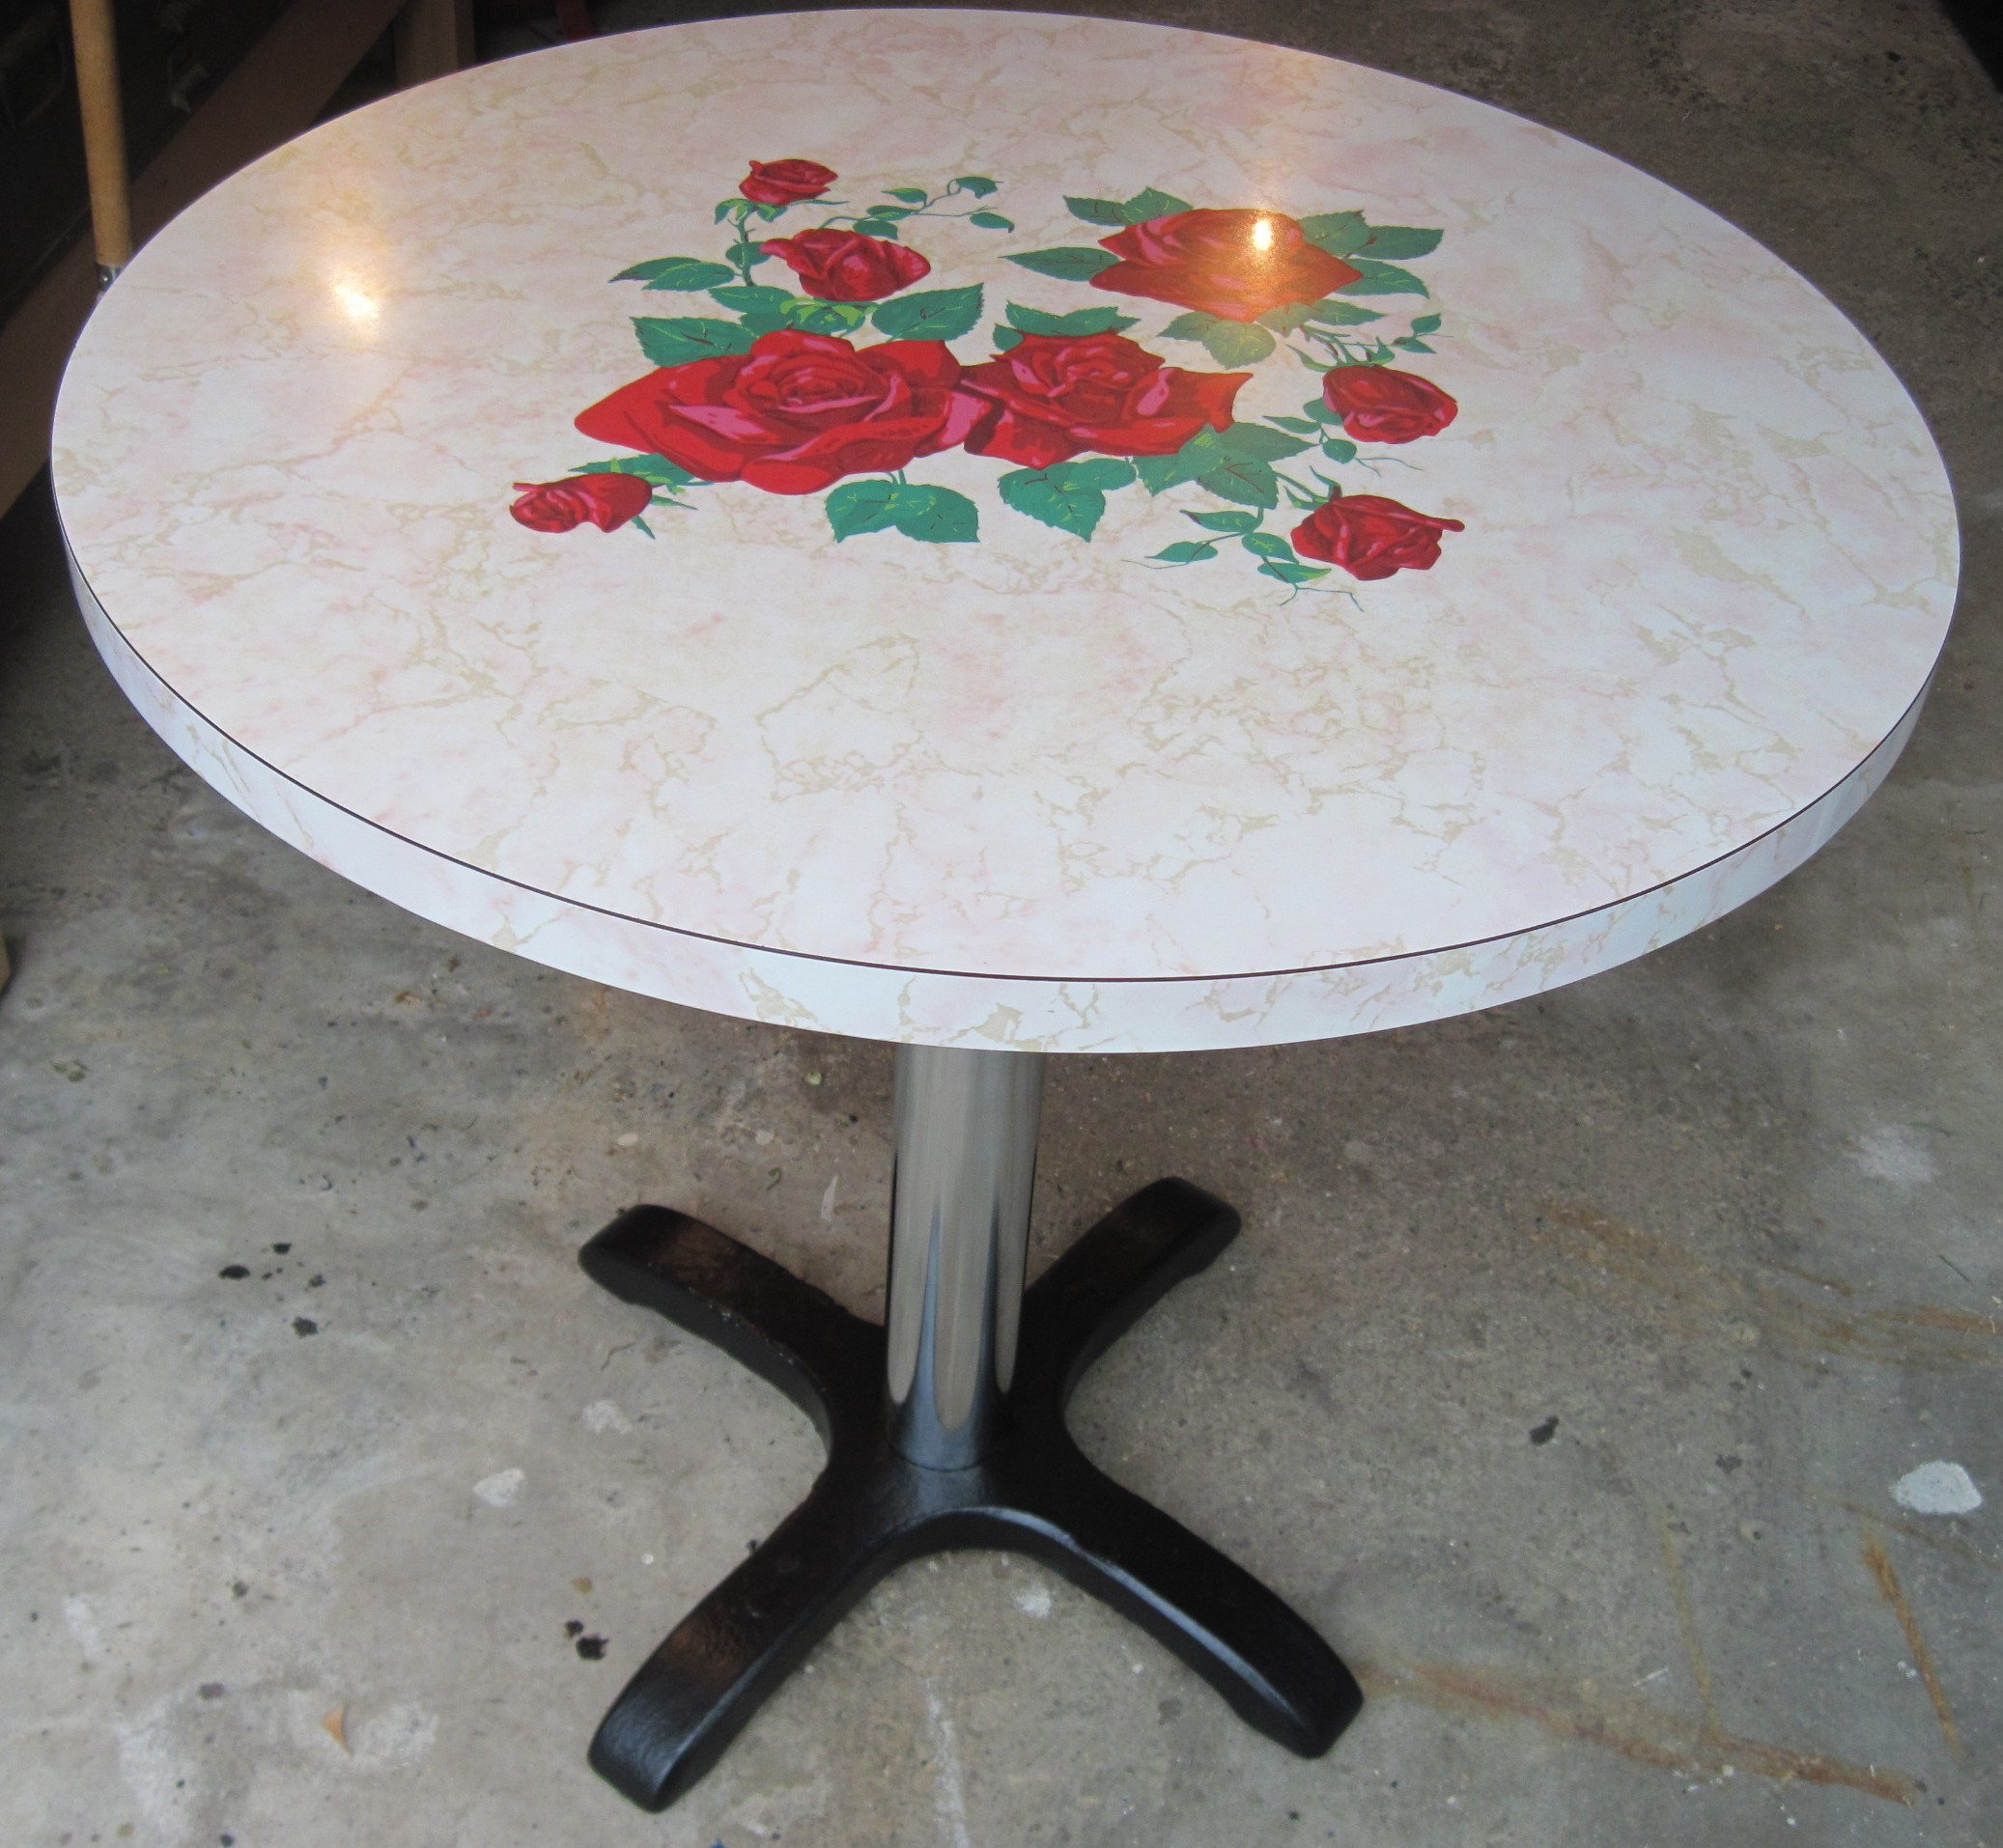 Marvelous Roses Table 4